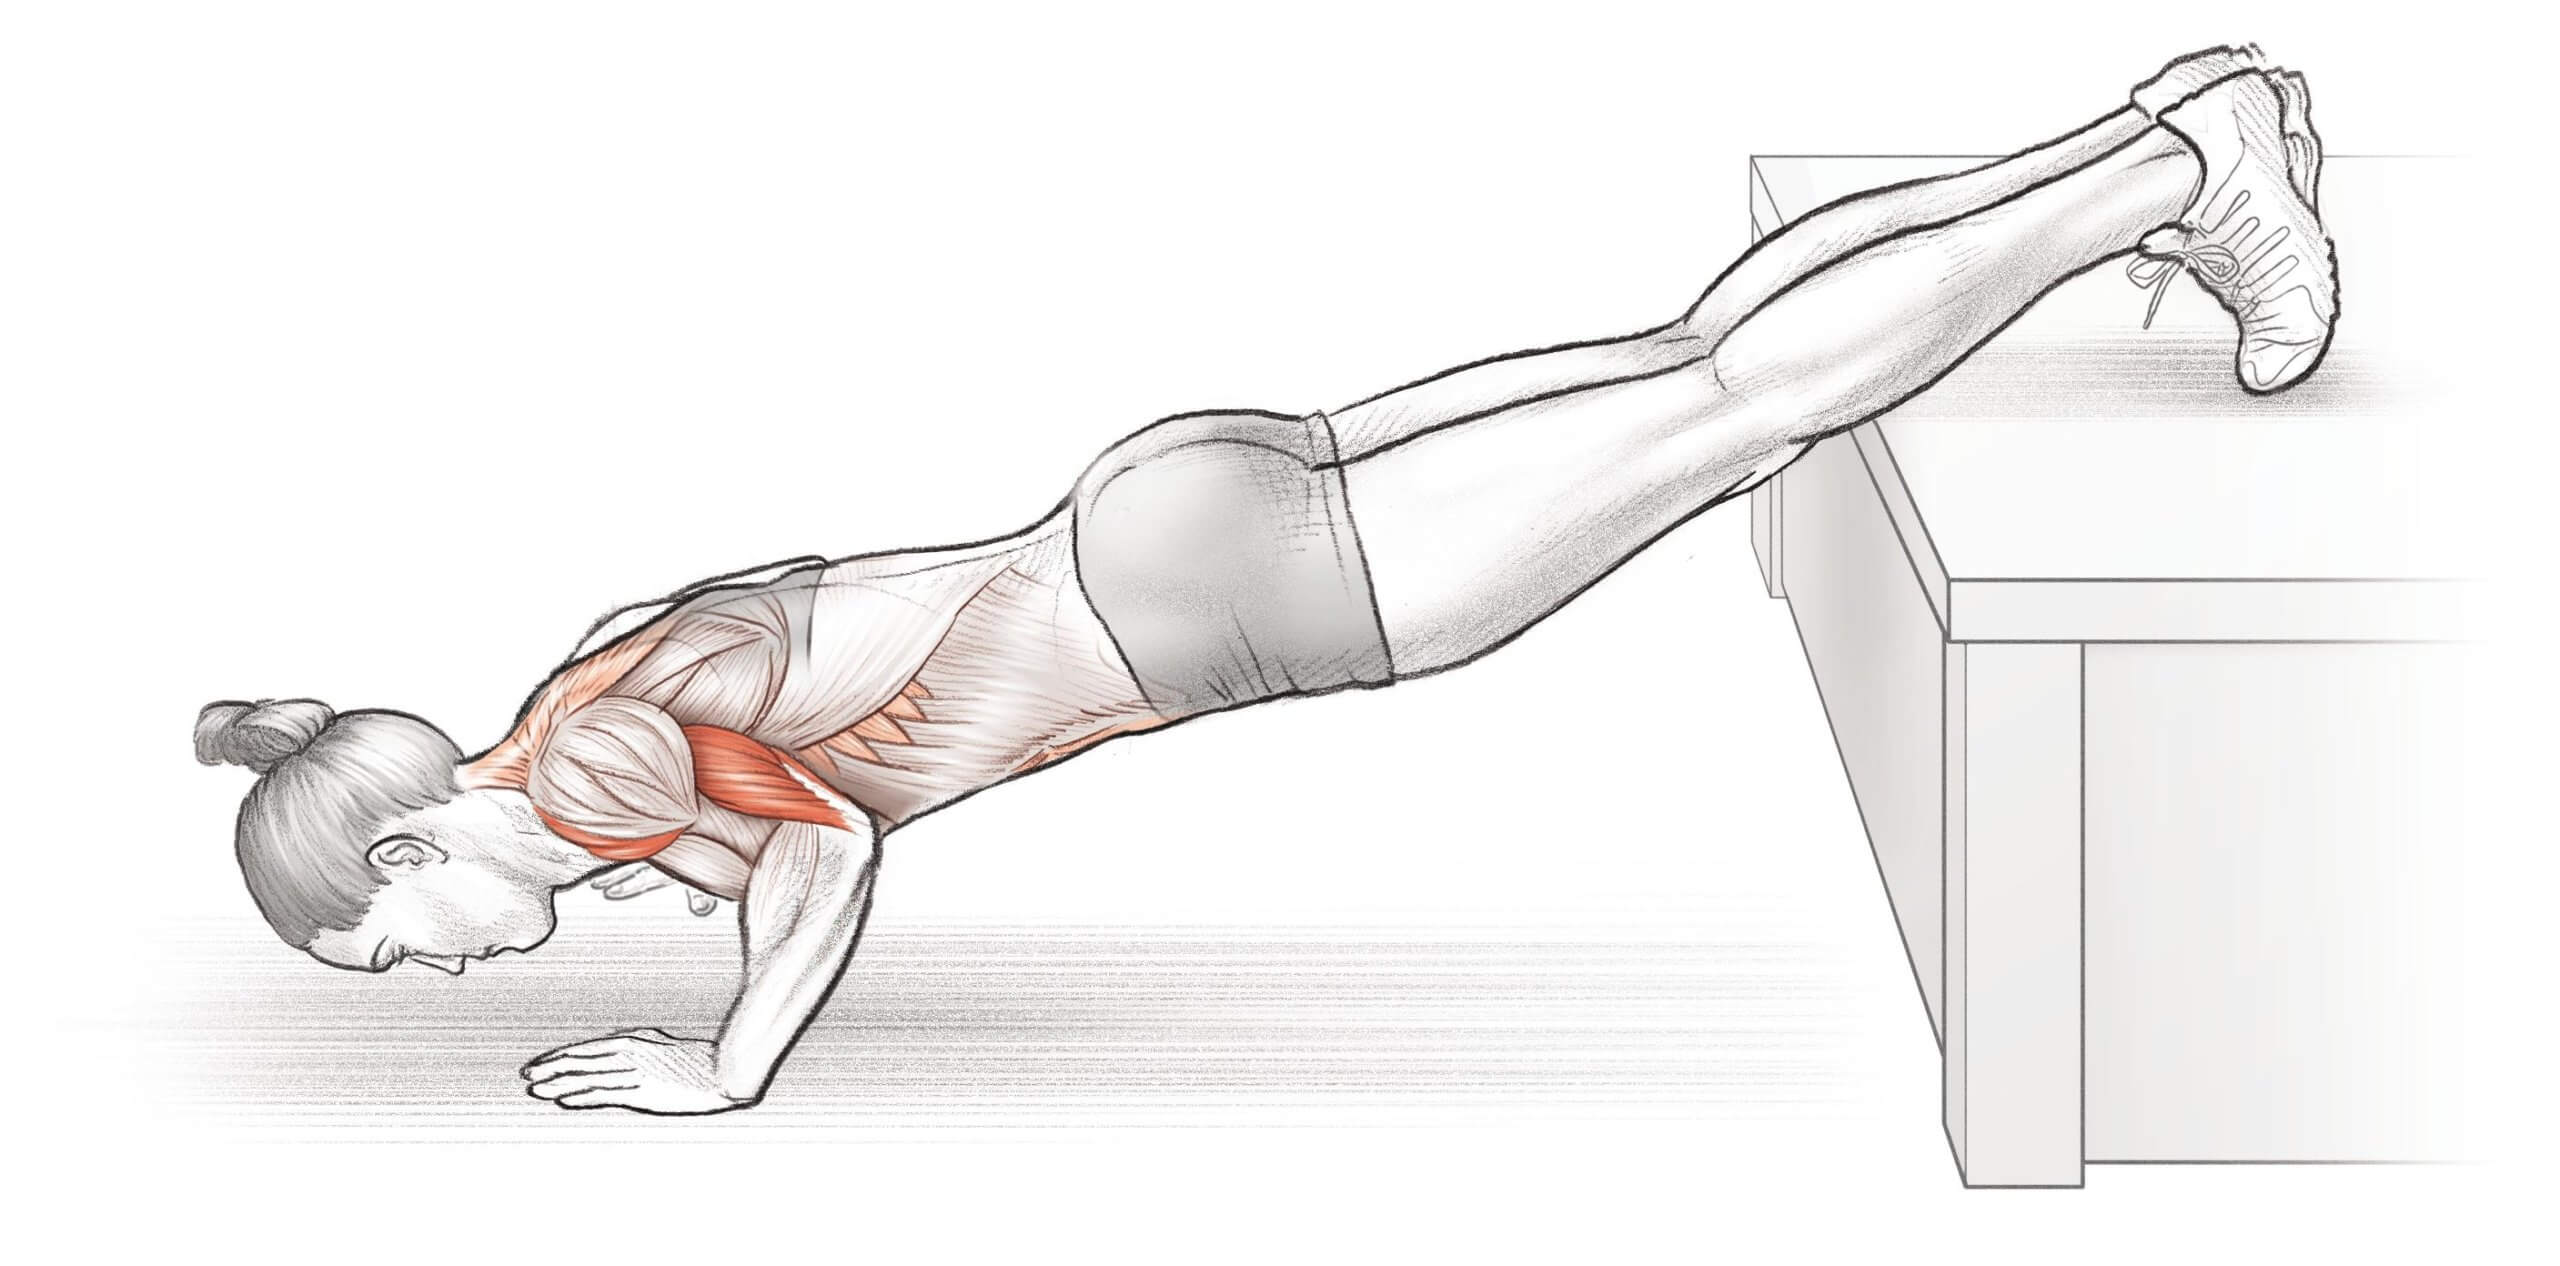 Feet-Elevated-Push-Up